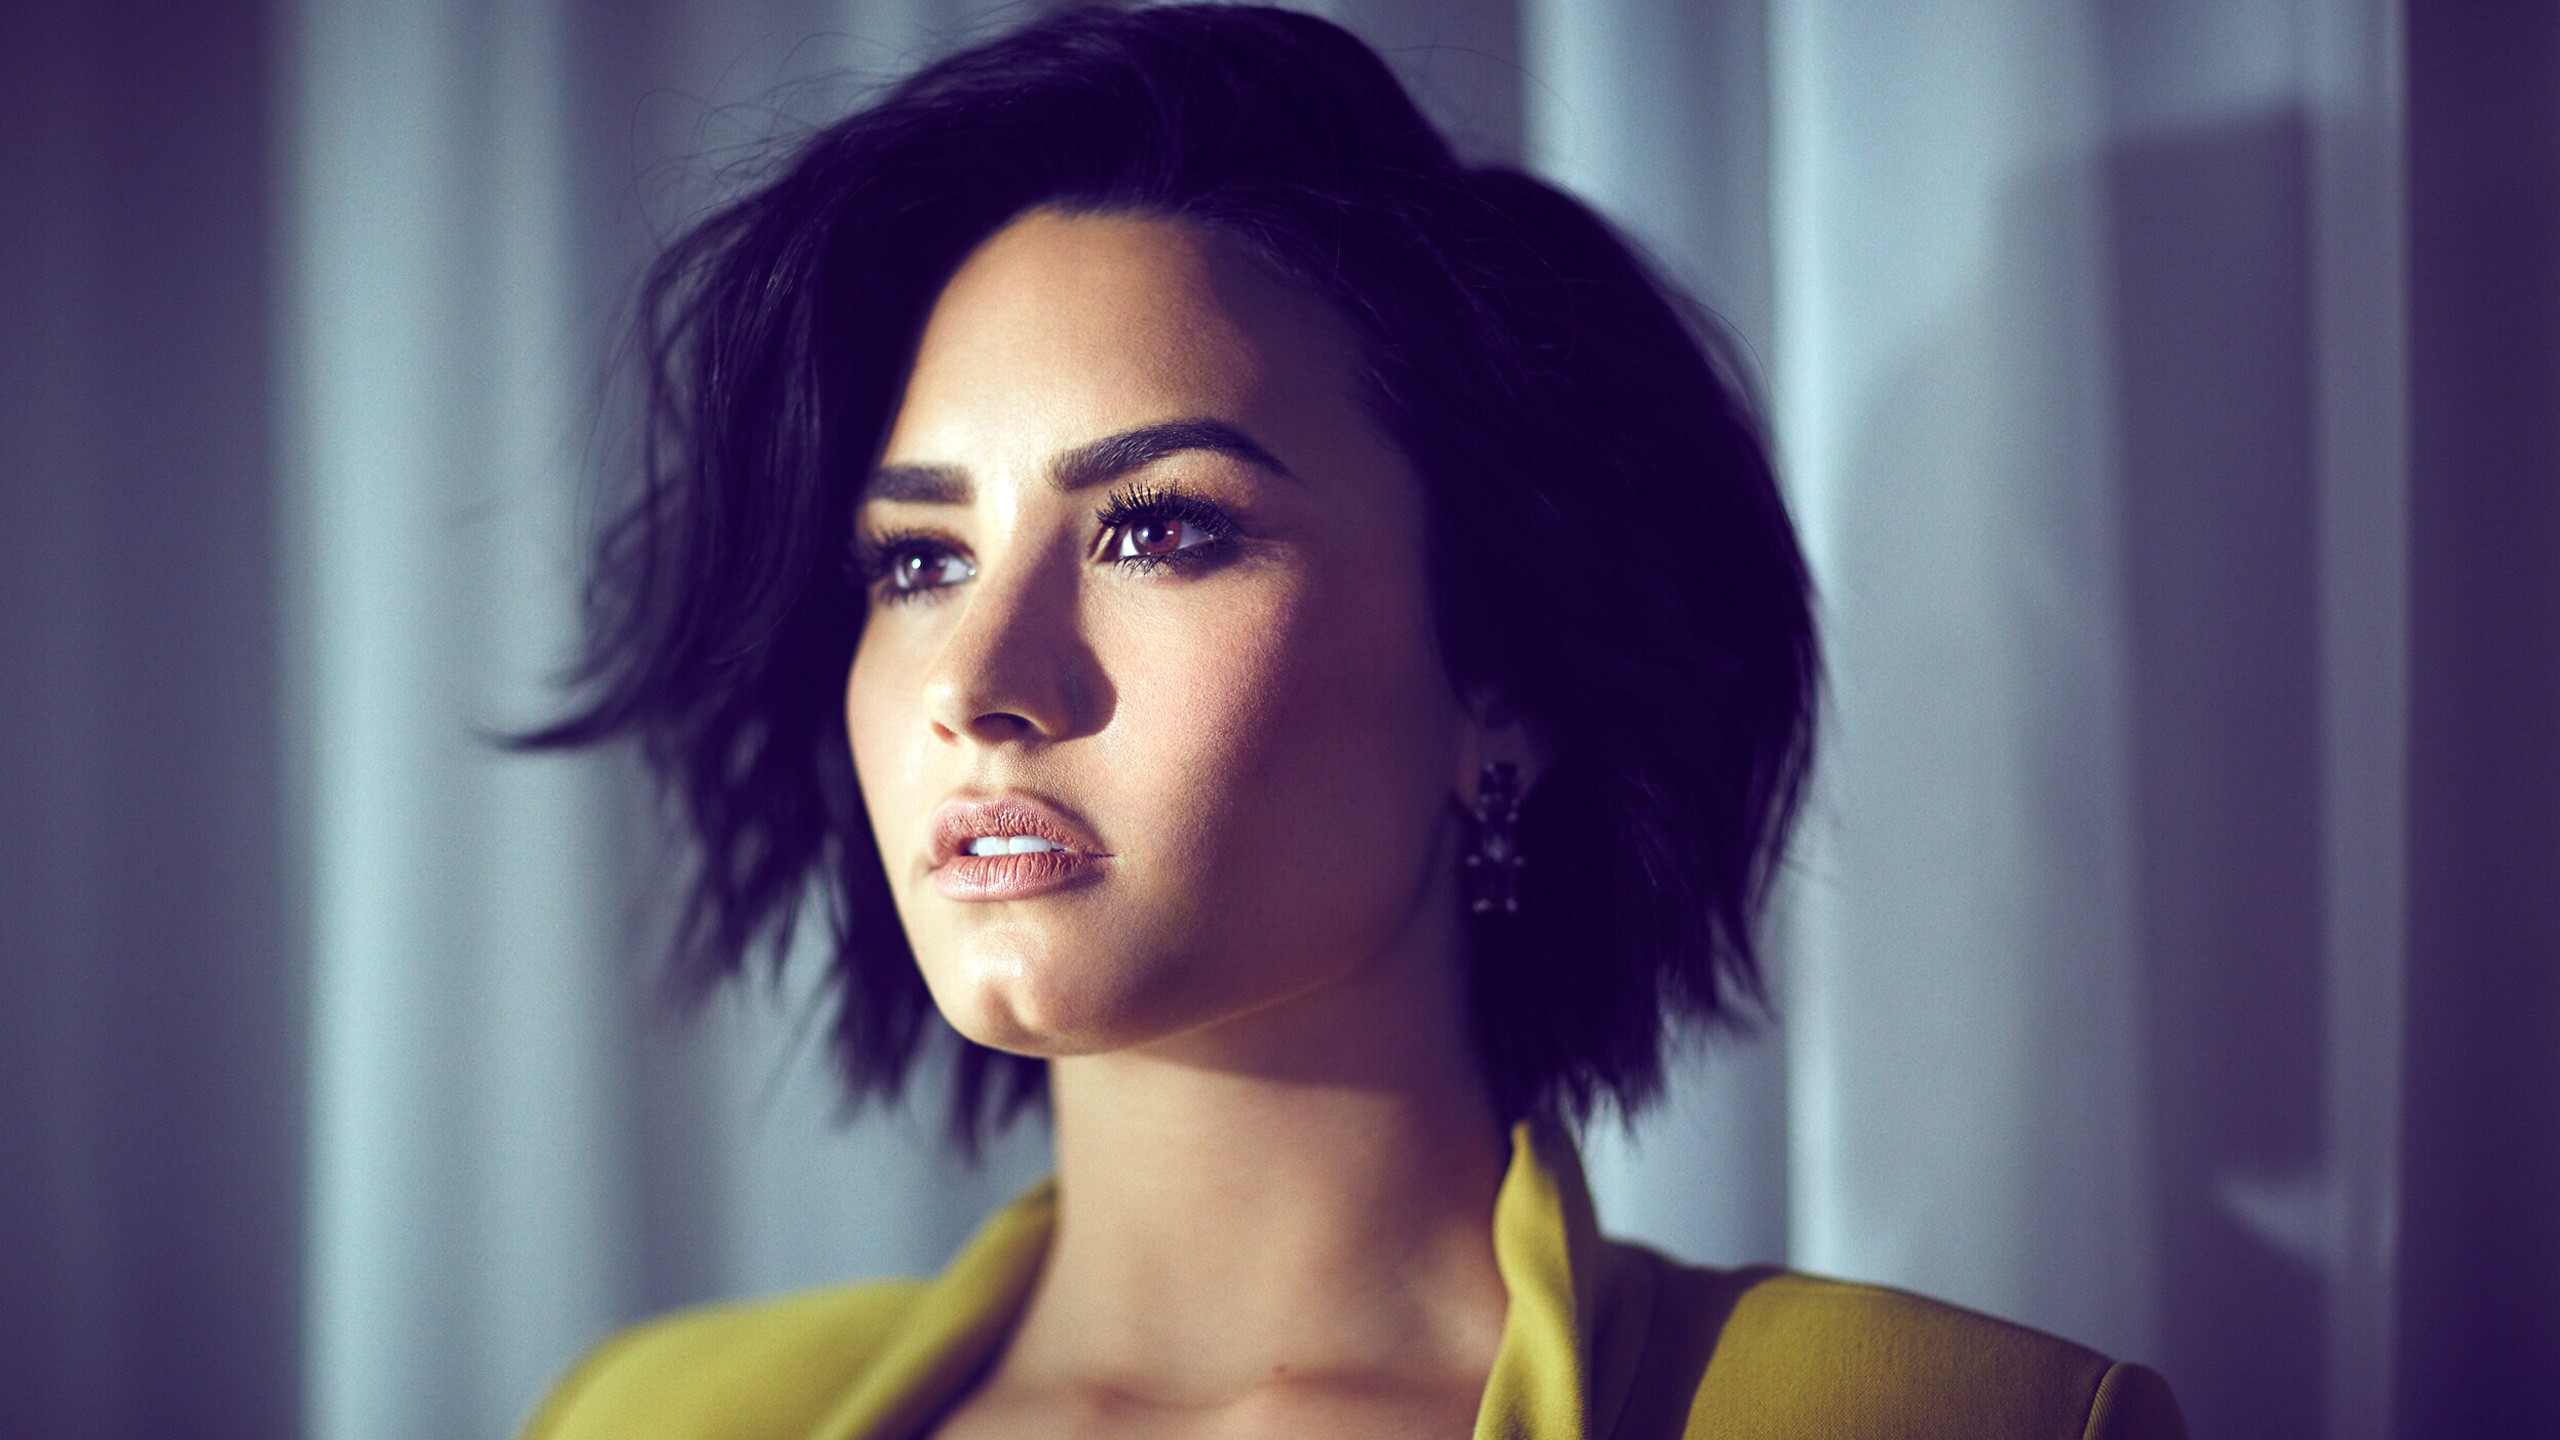 demi lovato wallpaper background